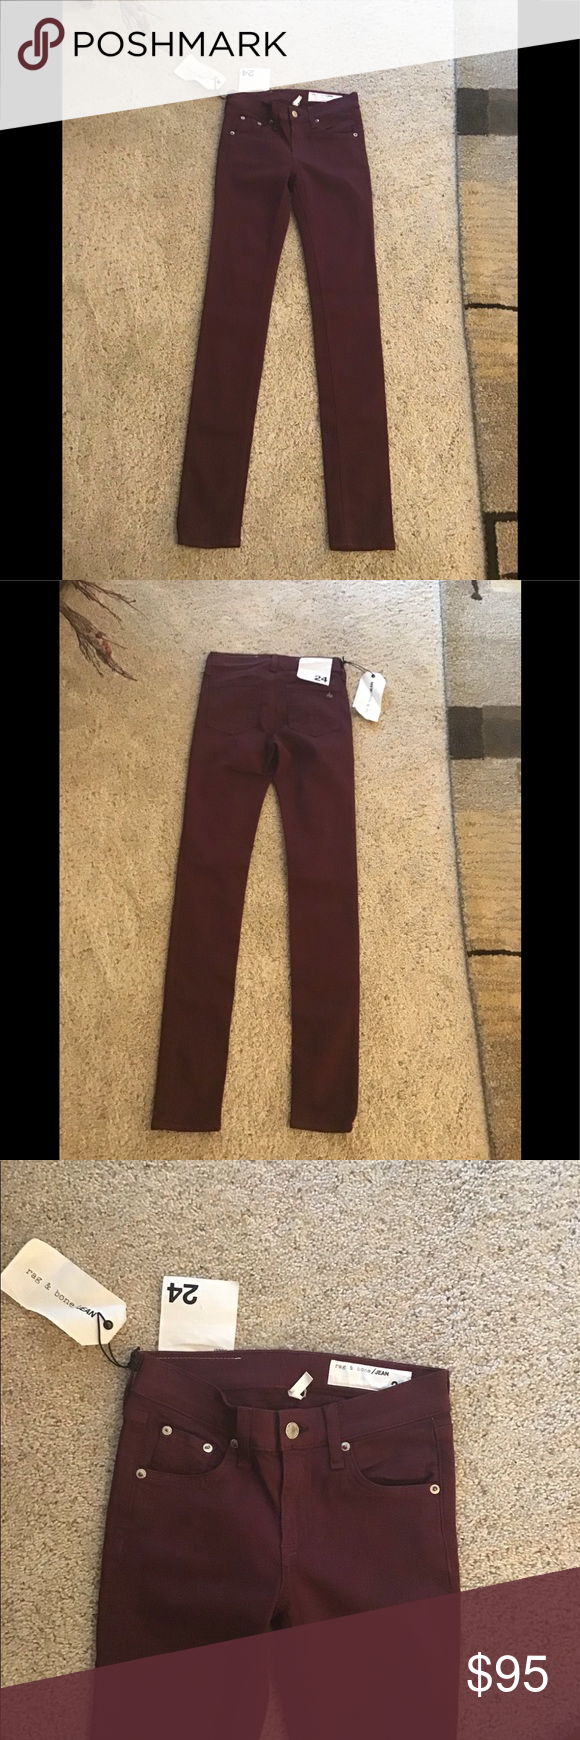 tag & bone port skinny jeans NWT mid rise skinny jeans size